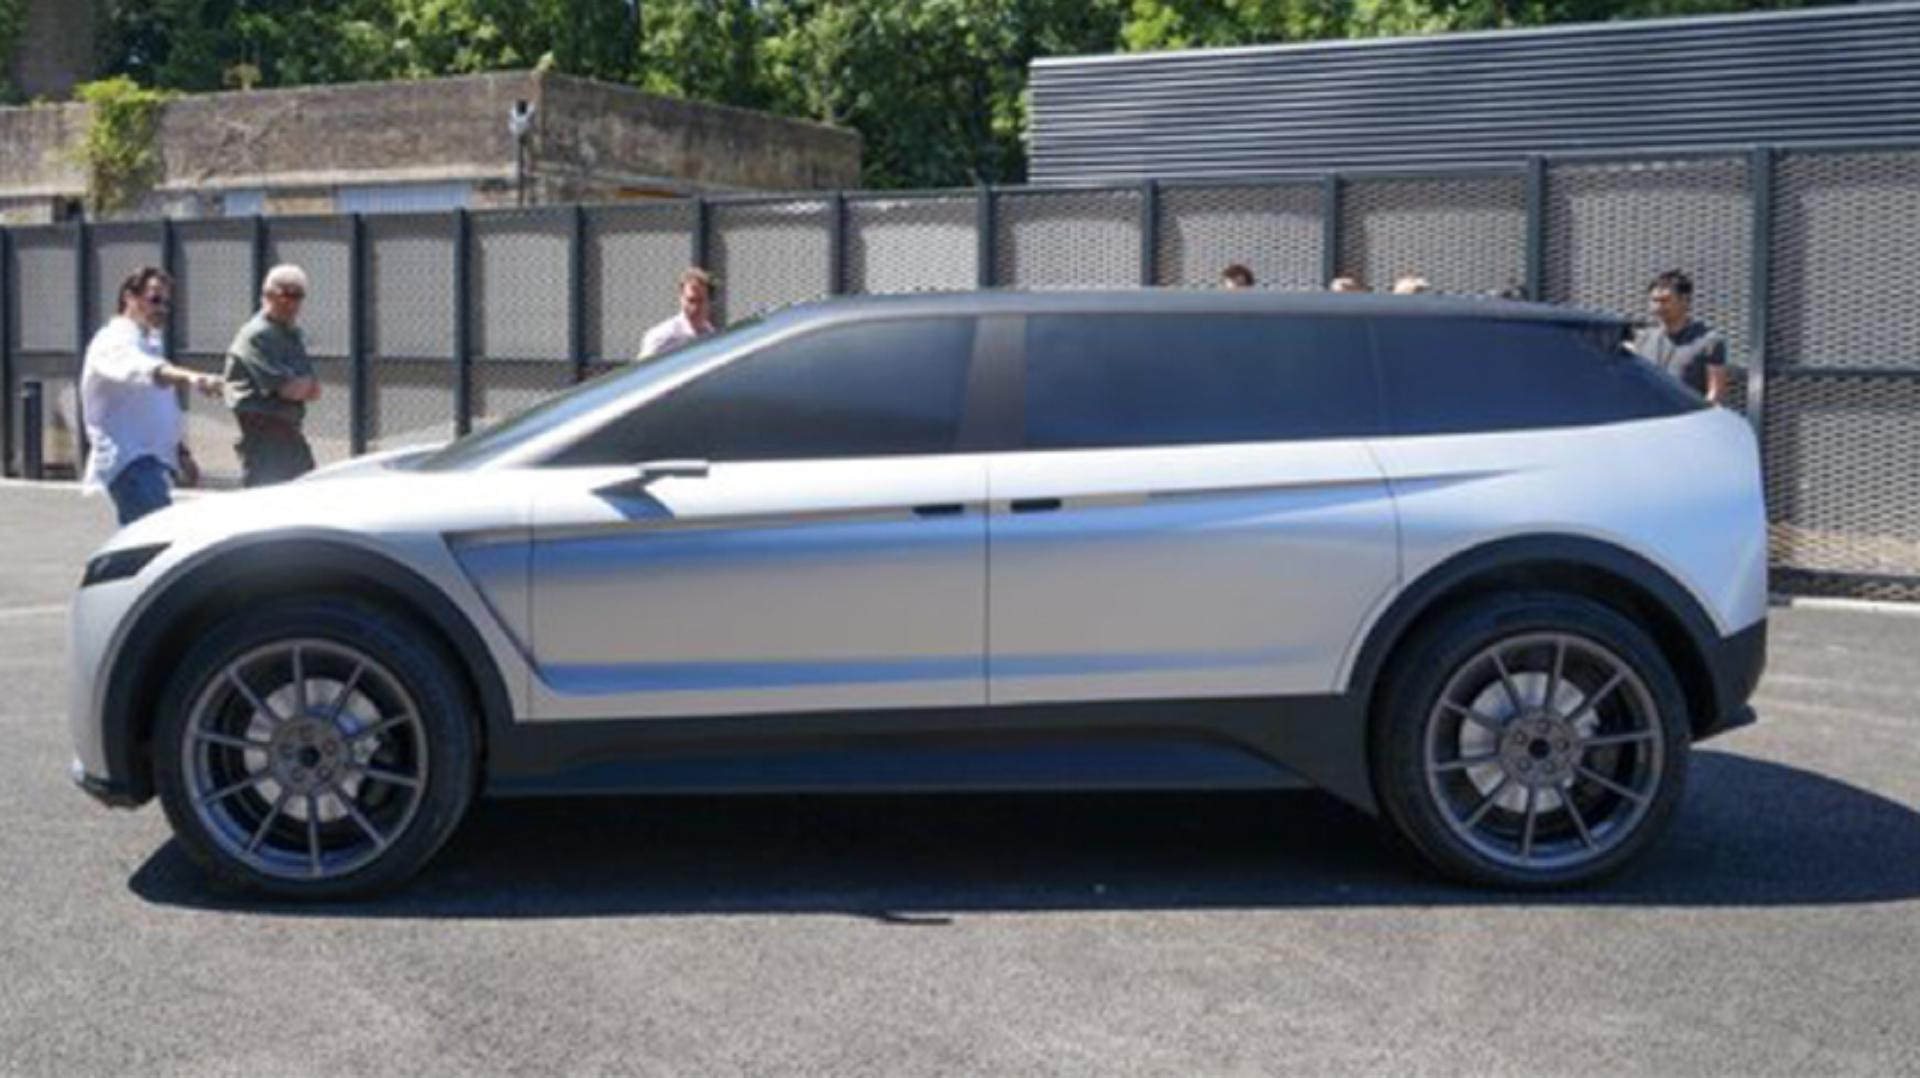 Side view of the exterior of the car